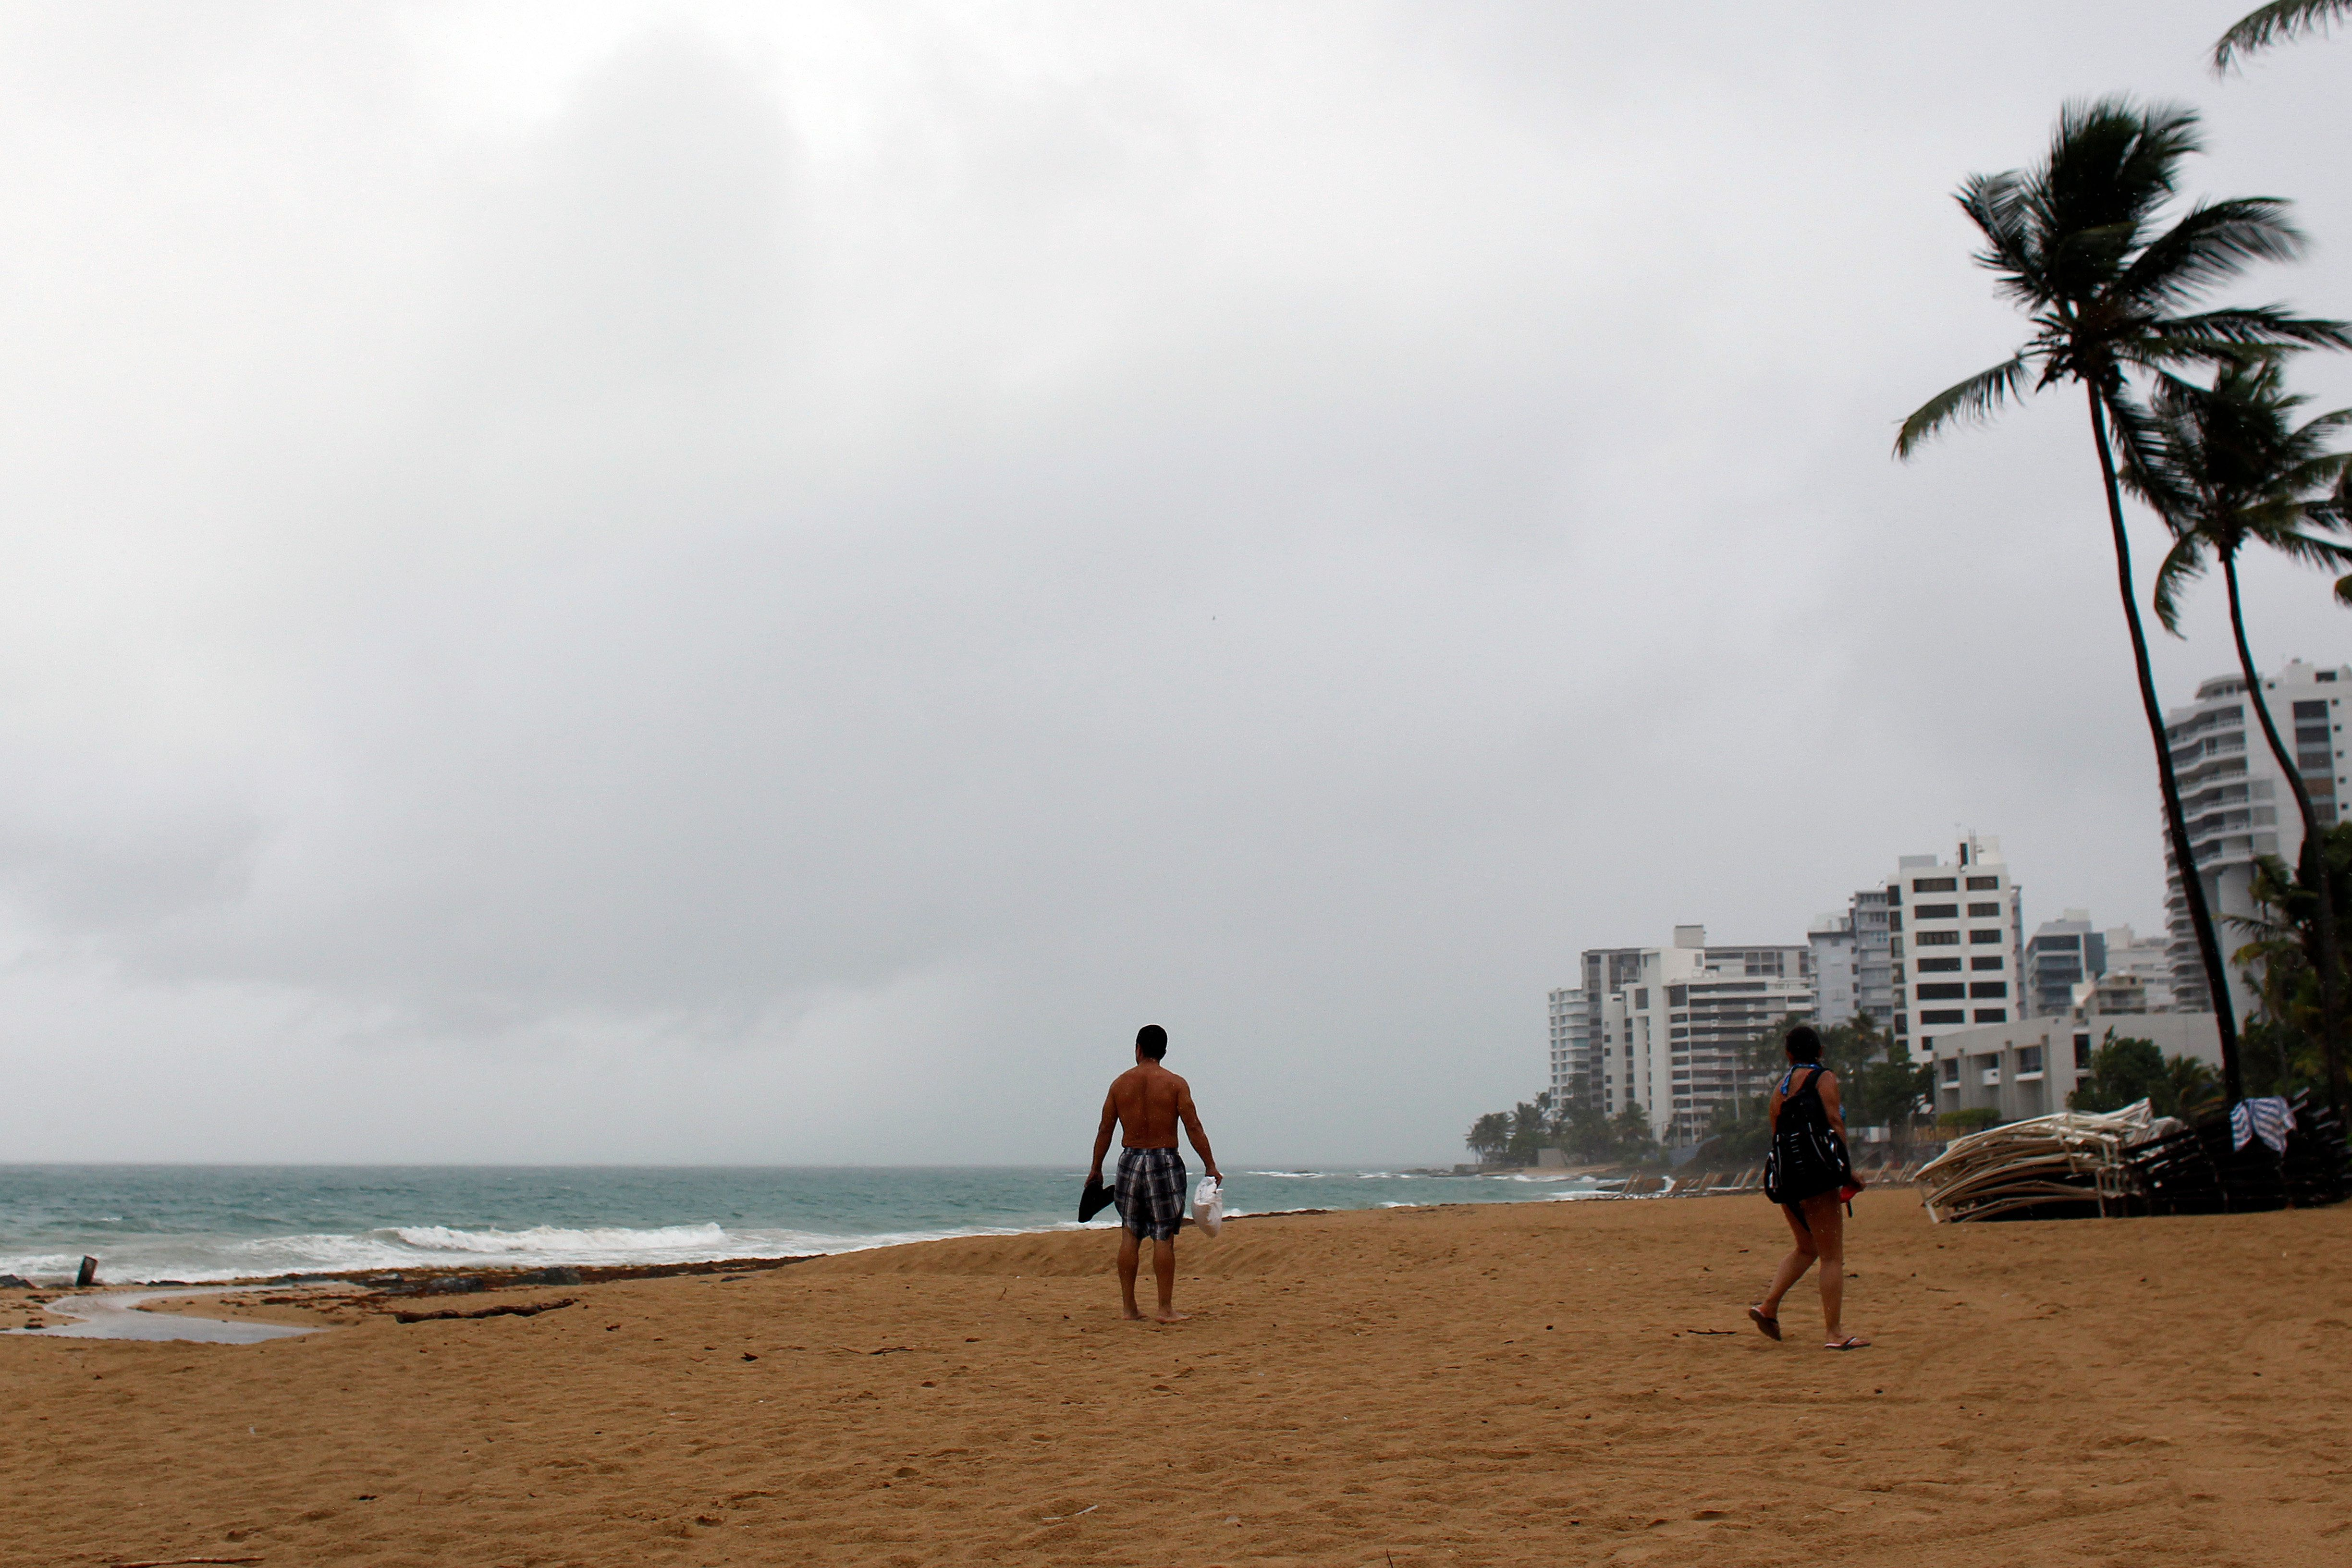 A couple walks on a beach as hurricane Irma approaches Puerto Rico in San Juan, on September 5, 2017. In Puerto Rico, a US territory of 3.5 million, Governor Ricardo Rossello activated the National Guard and announced the opening of storm shelters able to house up to 62,000 people. The major of the Puerto Rican capital San Juan, Carmen Yulin Cruz Soto, ordered 900 municipal employees -- police, emergency personnel, and aid and social workers -- to report for rotating 12-hour shifts.Even if Puerto Rico is spared a direct hit, the mayor said, three days of pounding rain will do heavy damage.  / AFP PHOTO / Ricardo ARDUENGO        (Photo credit should read RICARDO ARDUENGO/AFP/Getty Images)